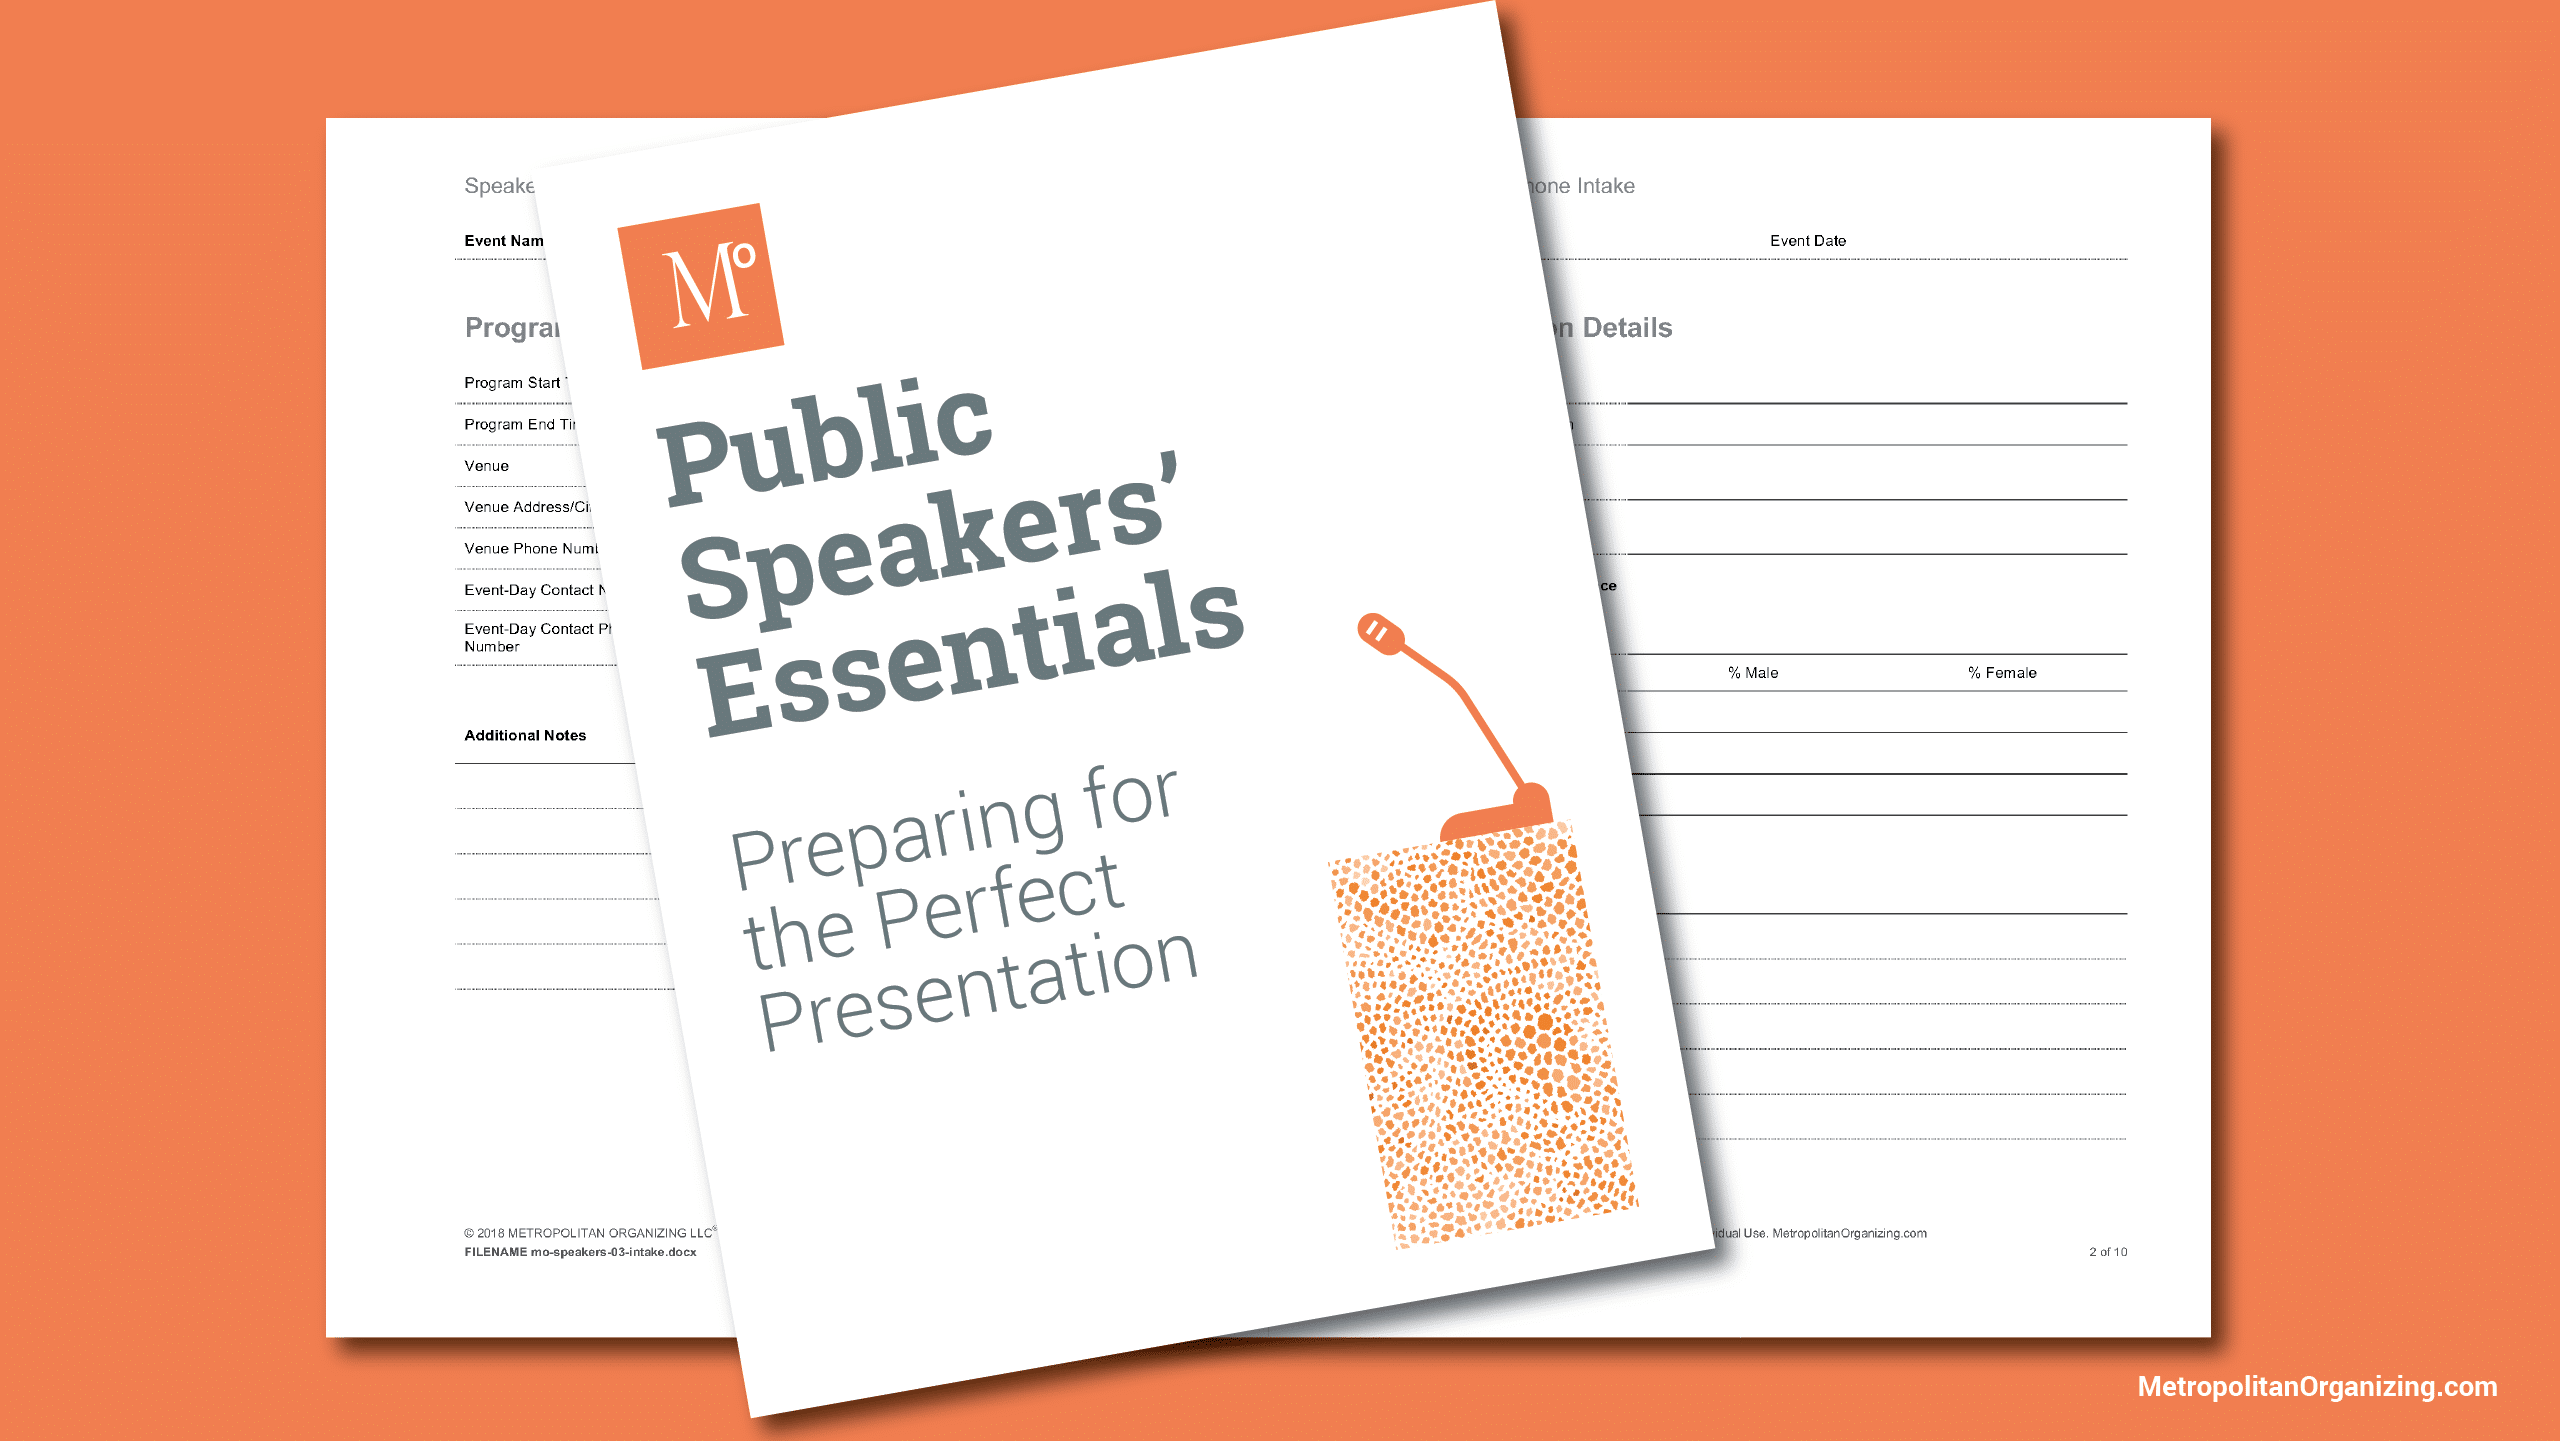 Public Speakers Essentials Preparing for the Perfect Presentation